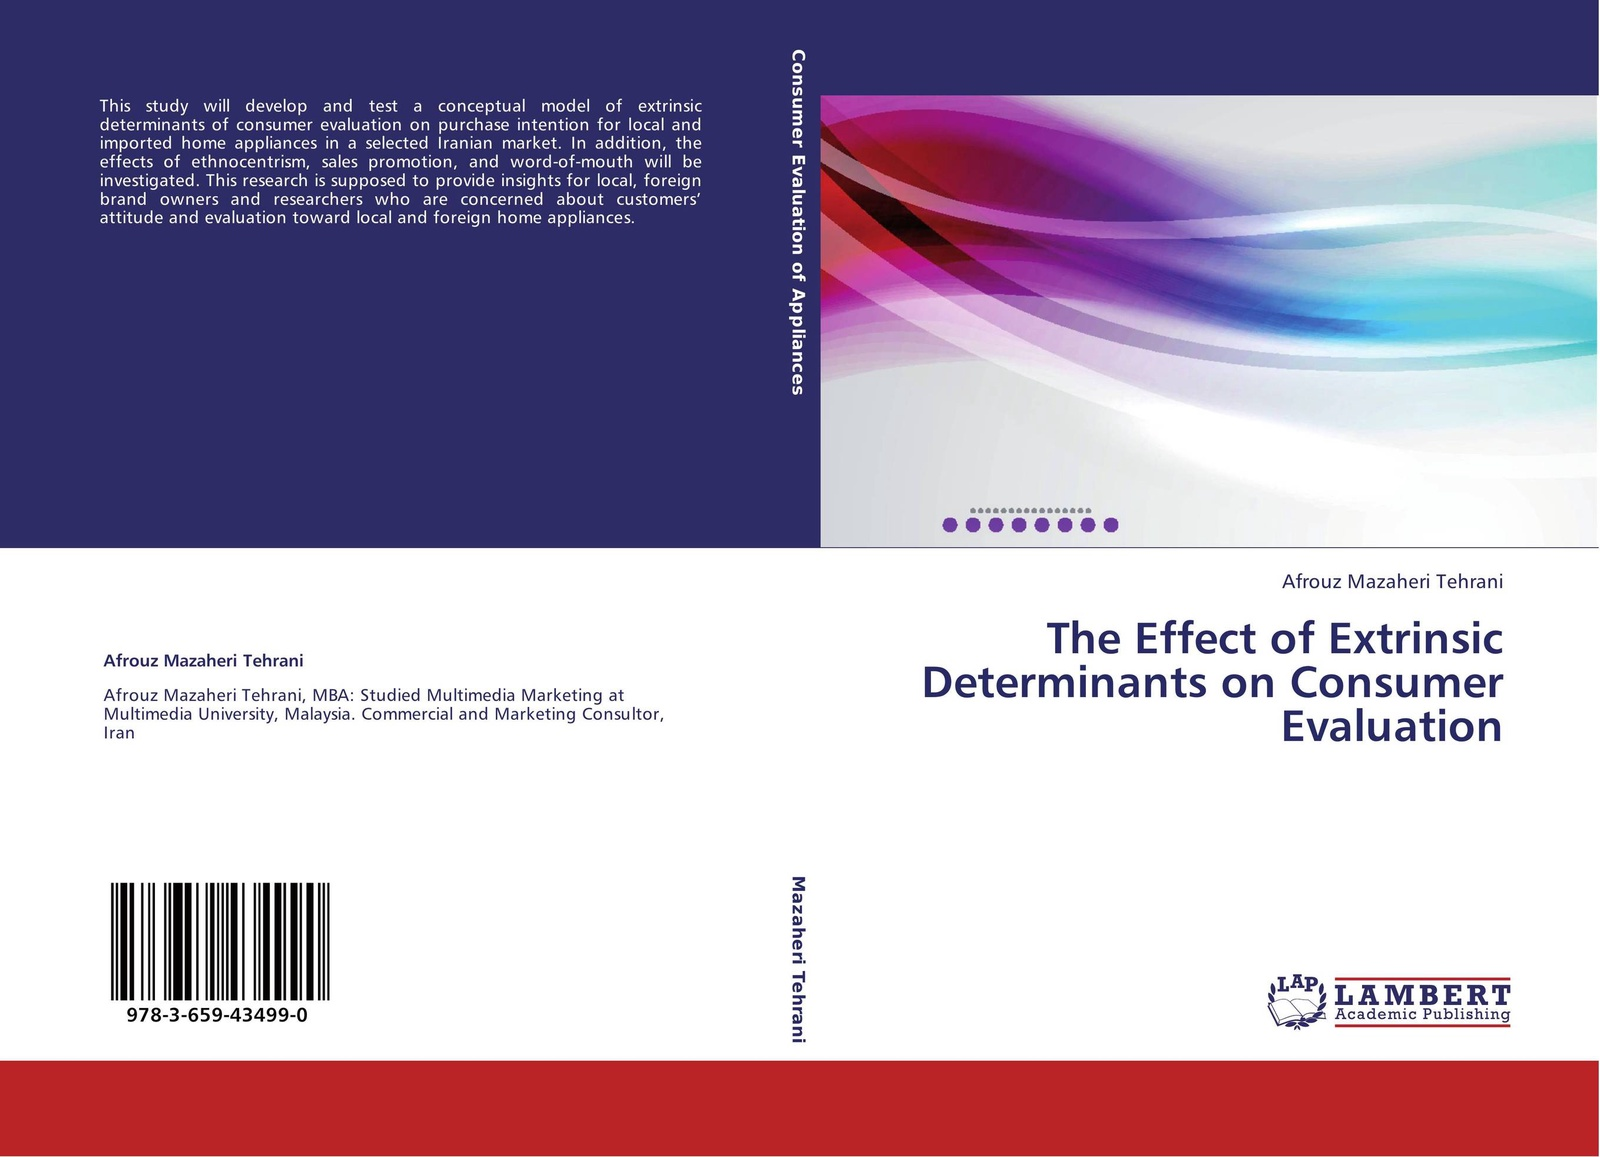 Afrouz Mazaheri Tehrani The Effect of Extrinsic Determinants on Consumer Evaluation muhammad naeem intrinsic versus extrinsic motivation and the effects of those types on employees